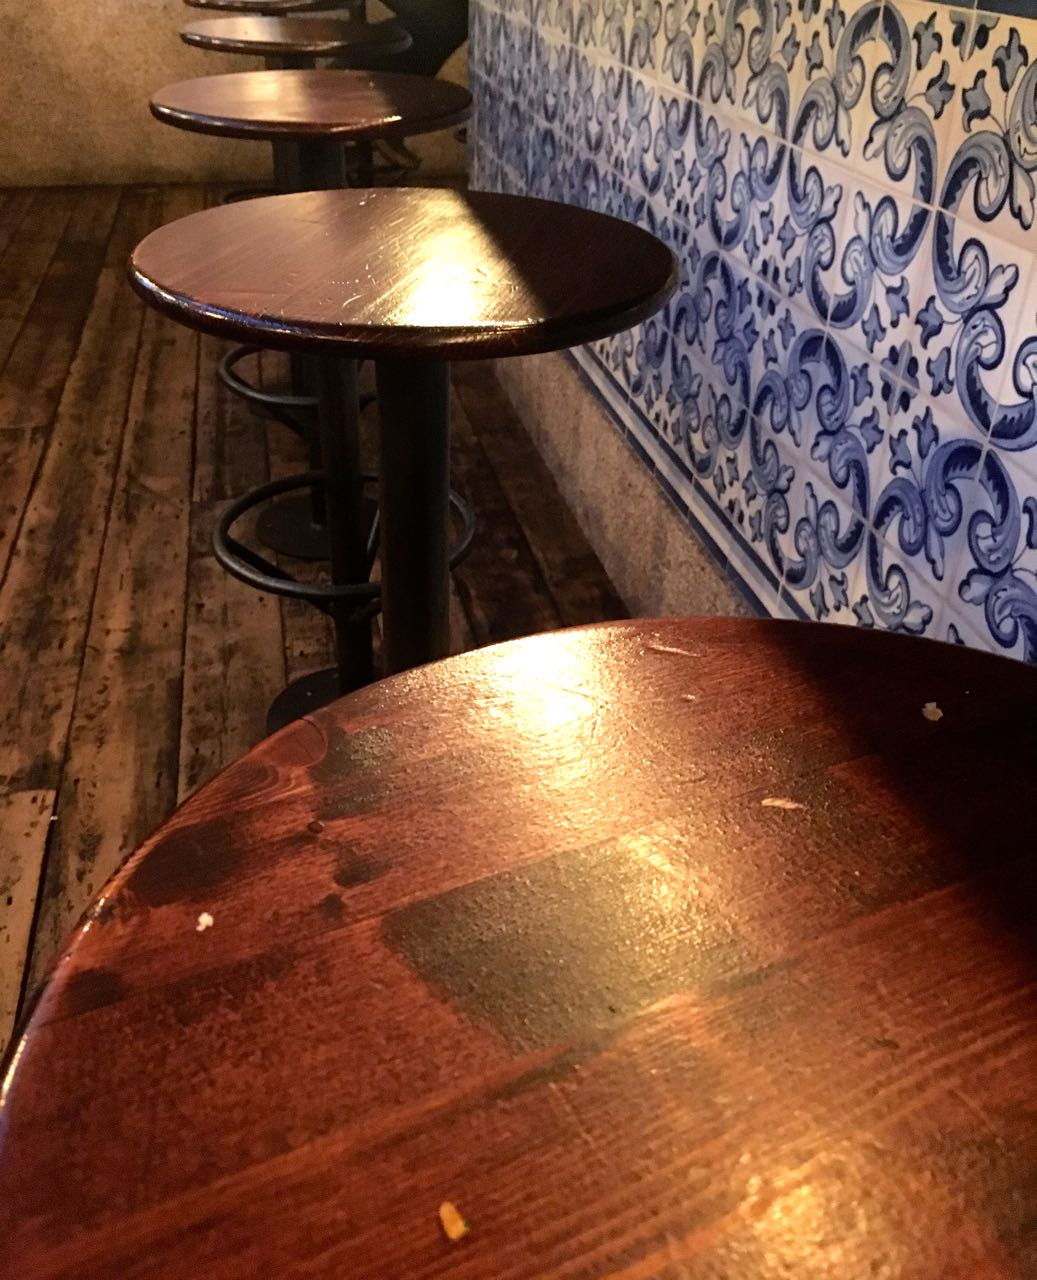 Stools lined up against the tile clad counter